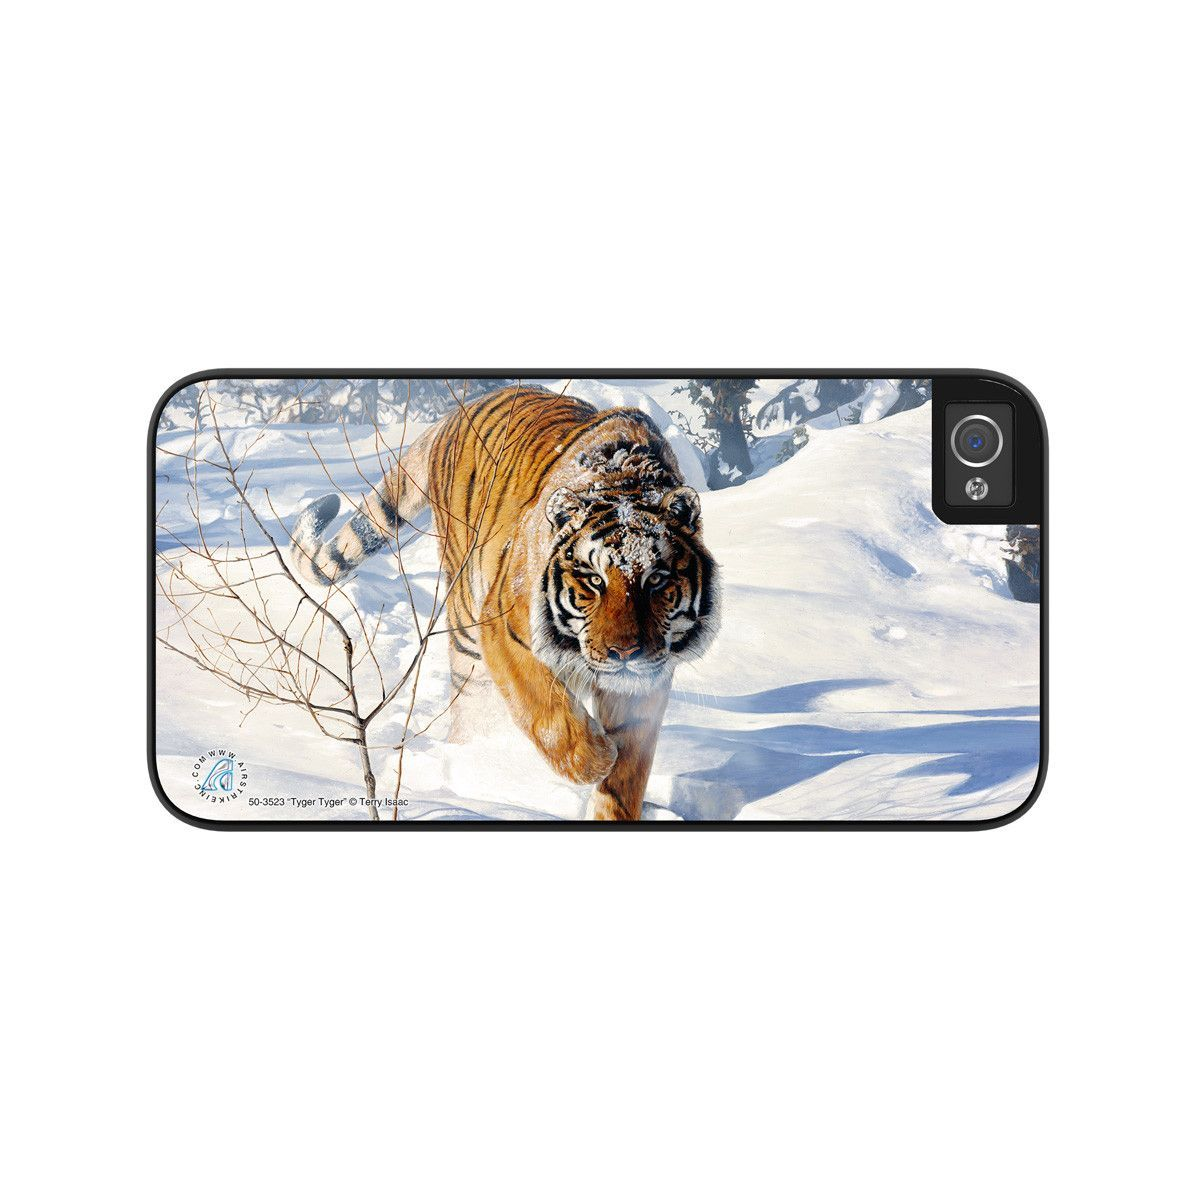 "Airstrike® 50-3523-""Tyger Tyger"" Bengal Tiger iPhone 5 Case, iPhone 5s Case, iPhone 4/4s Case Protective Phone Cases"